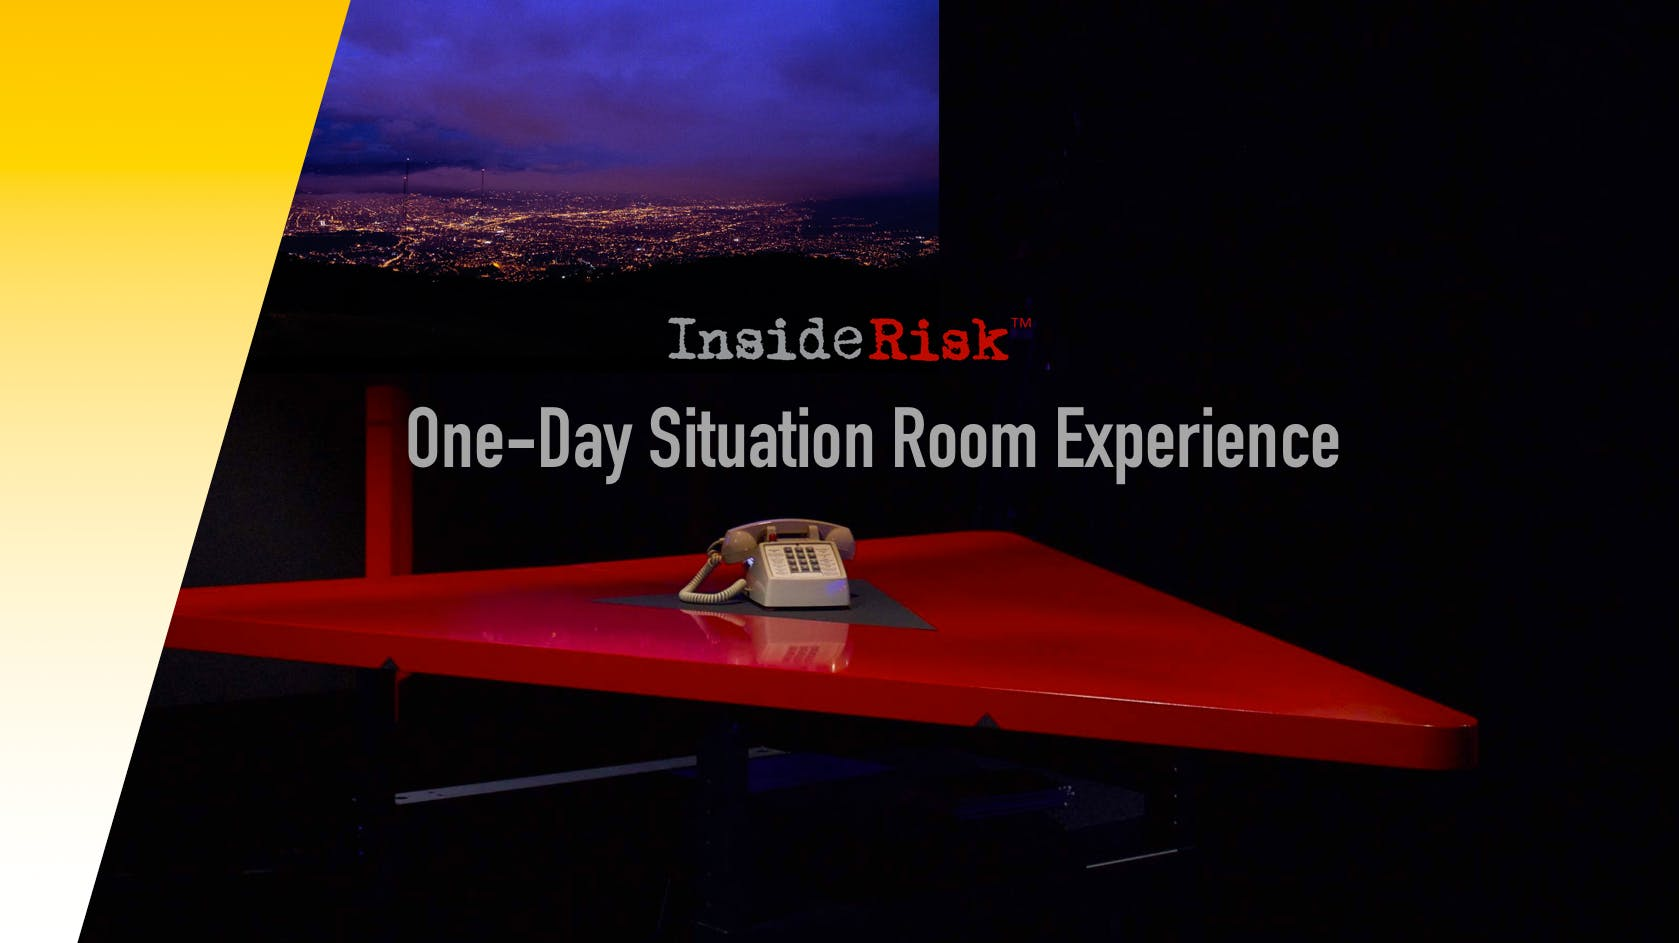 InsideRisk One-Day Situation Room Experience